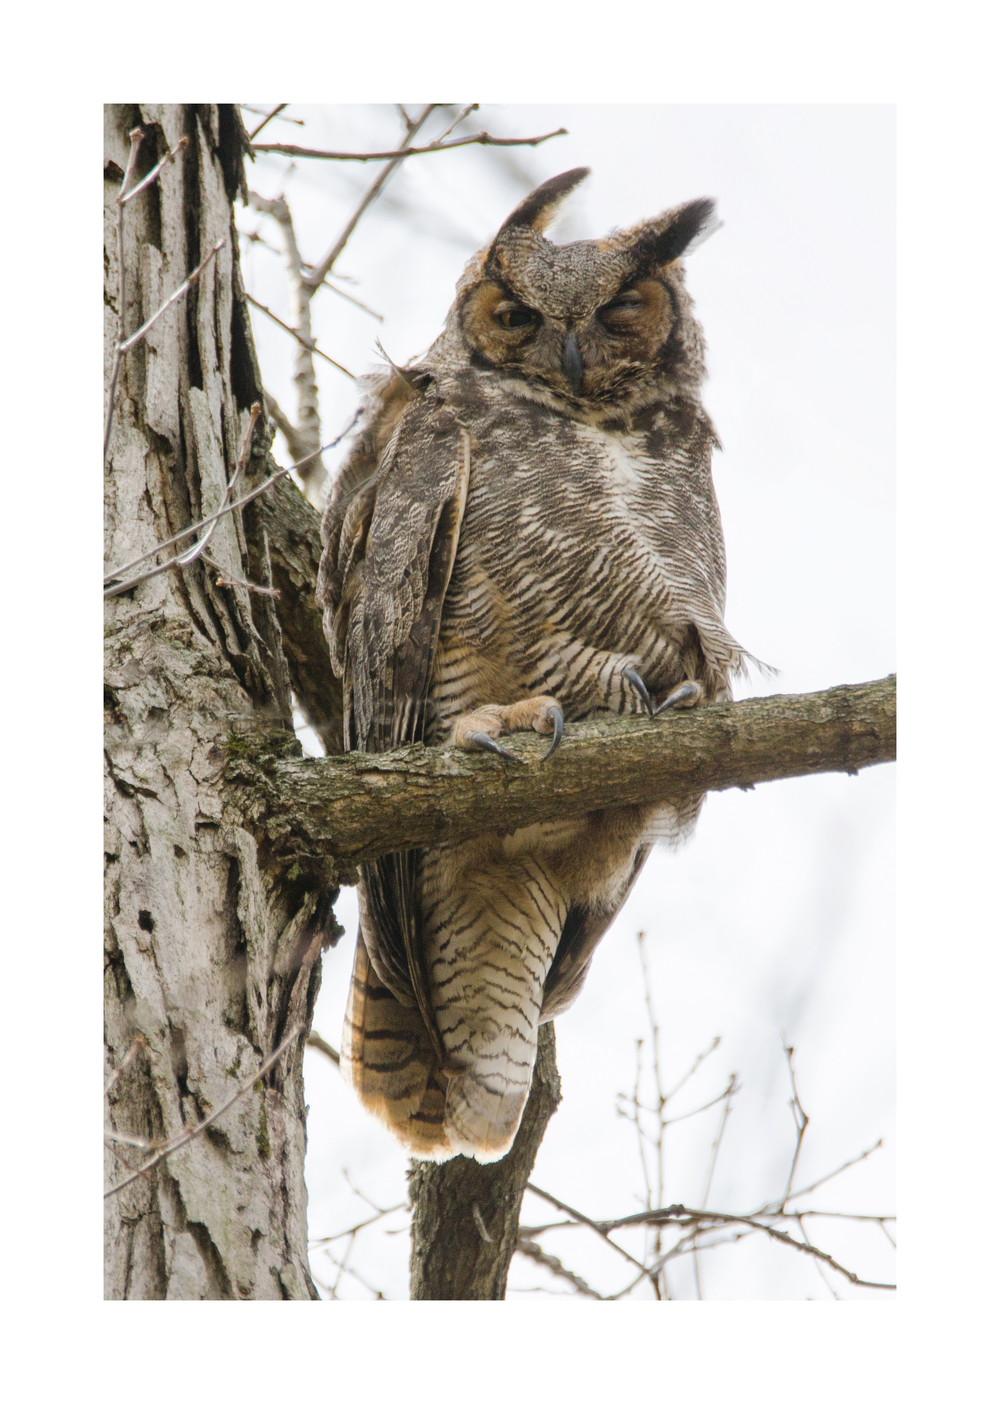 Male  Great Horned Owl  Nikon D7000 ISO 200 600mm f/8.0 1/1000